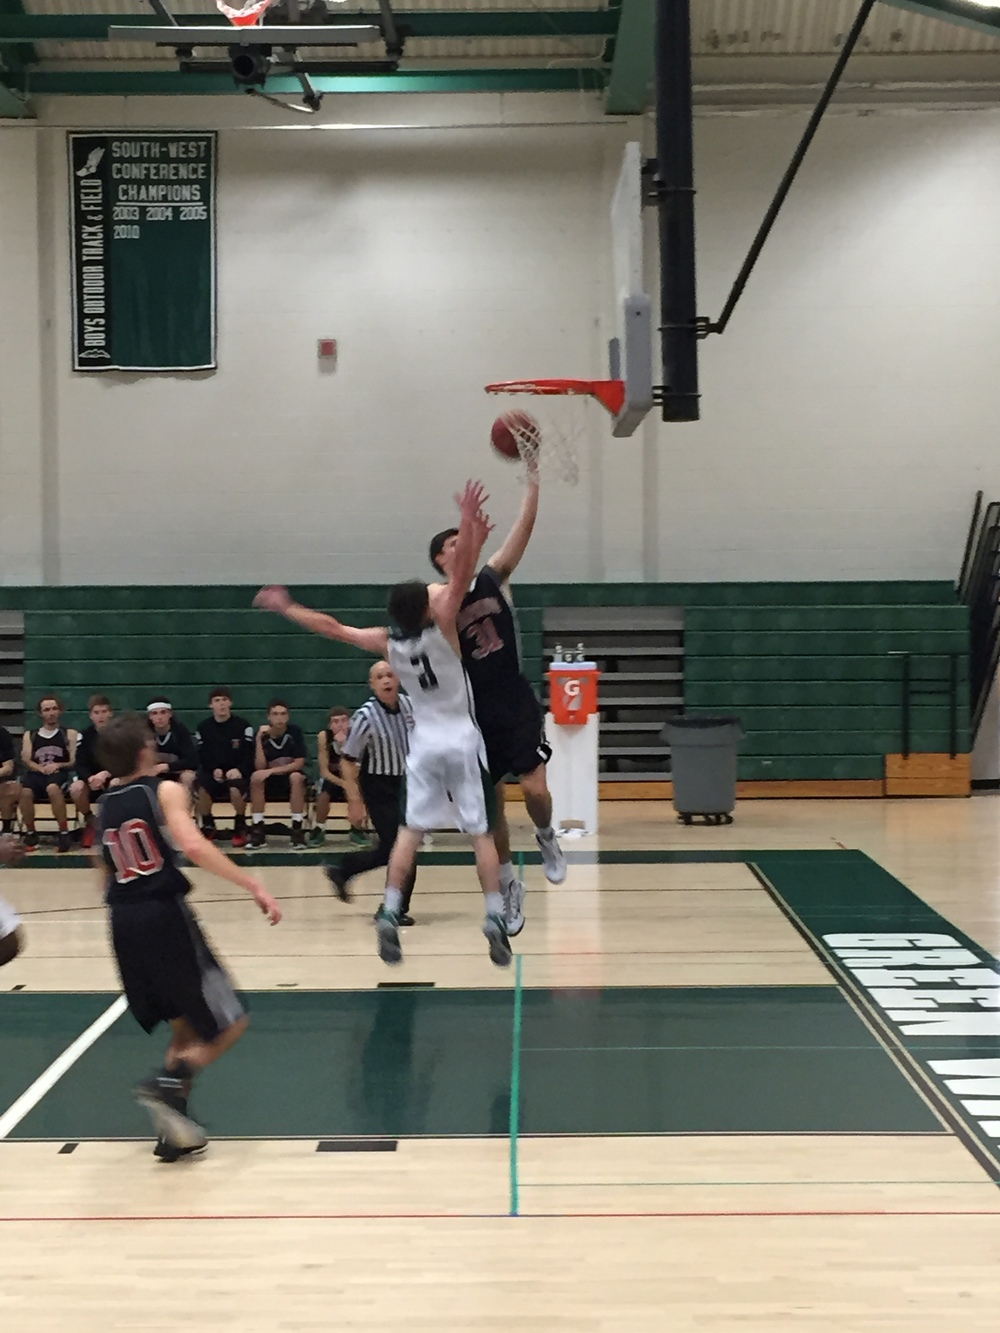 Panther's senior Grant Wallace goes up for fast break layup. Provided by: CTHoopsNews